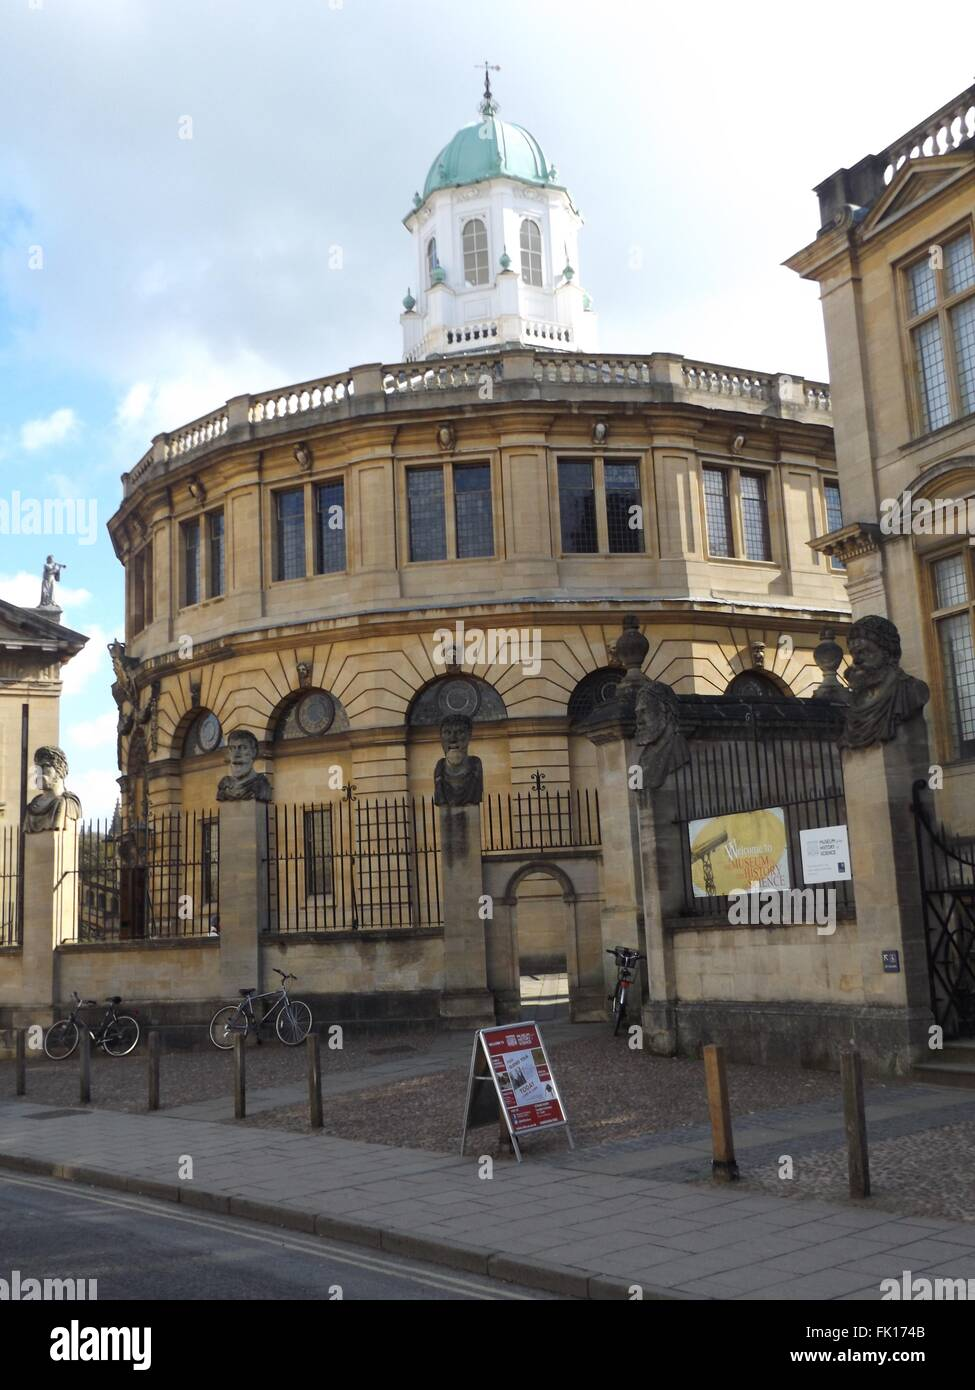 Sheldonian Theatre, Oxford, UK - Stock Image